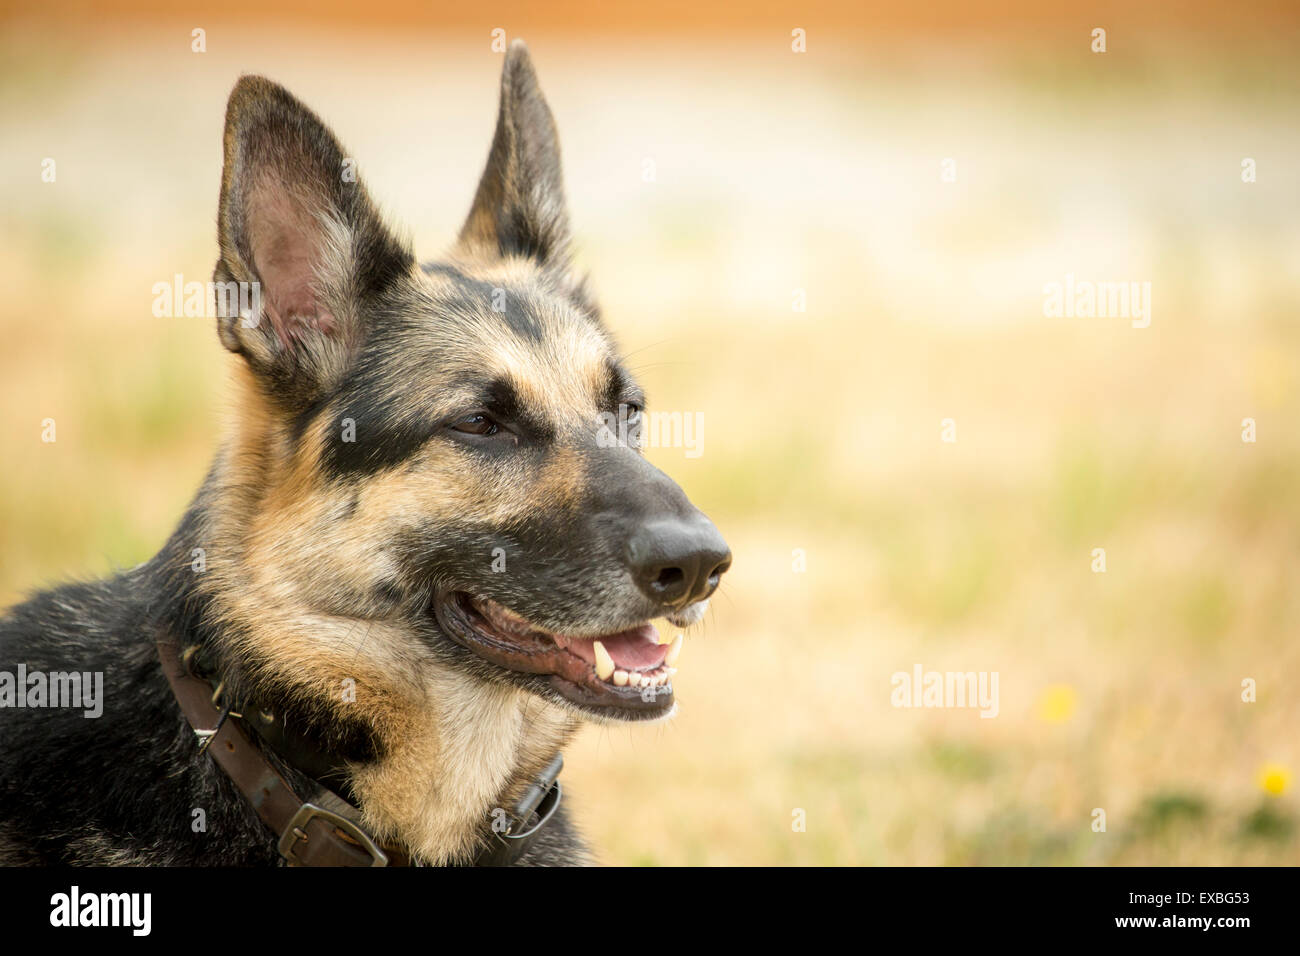 Portrait of alert and vigilant German Shepherd. - Stock Image